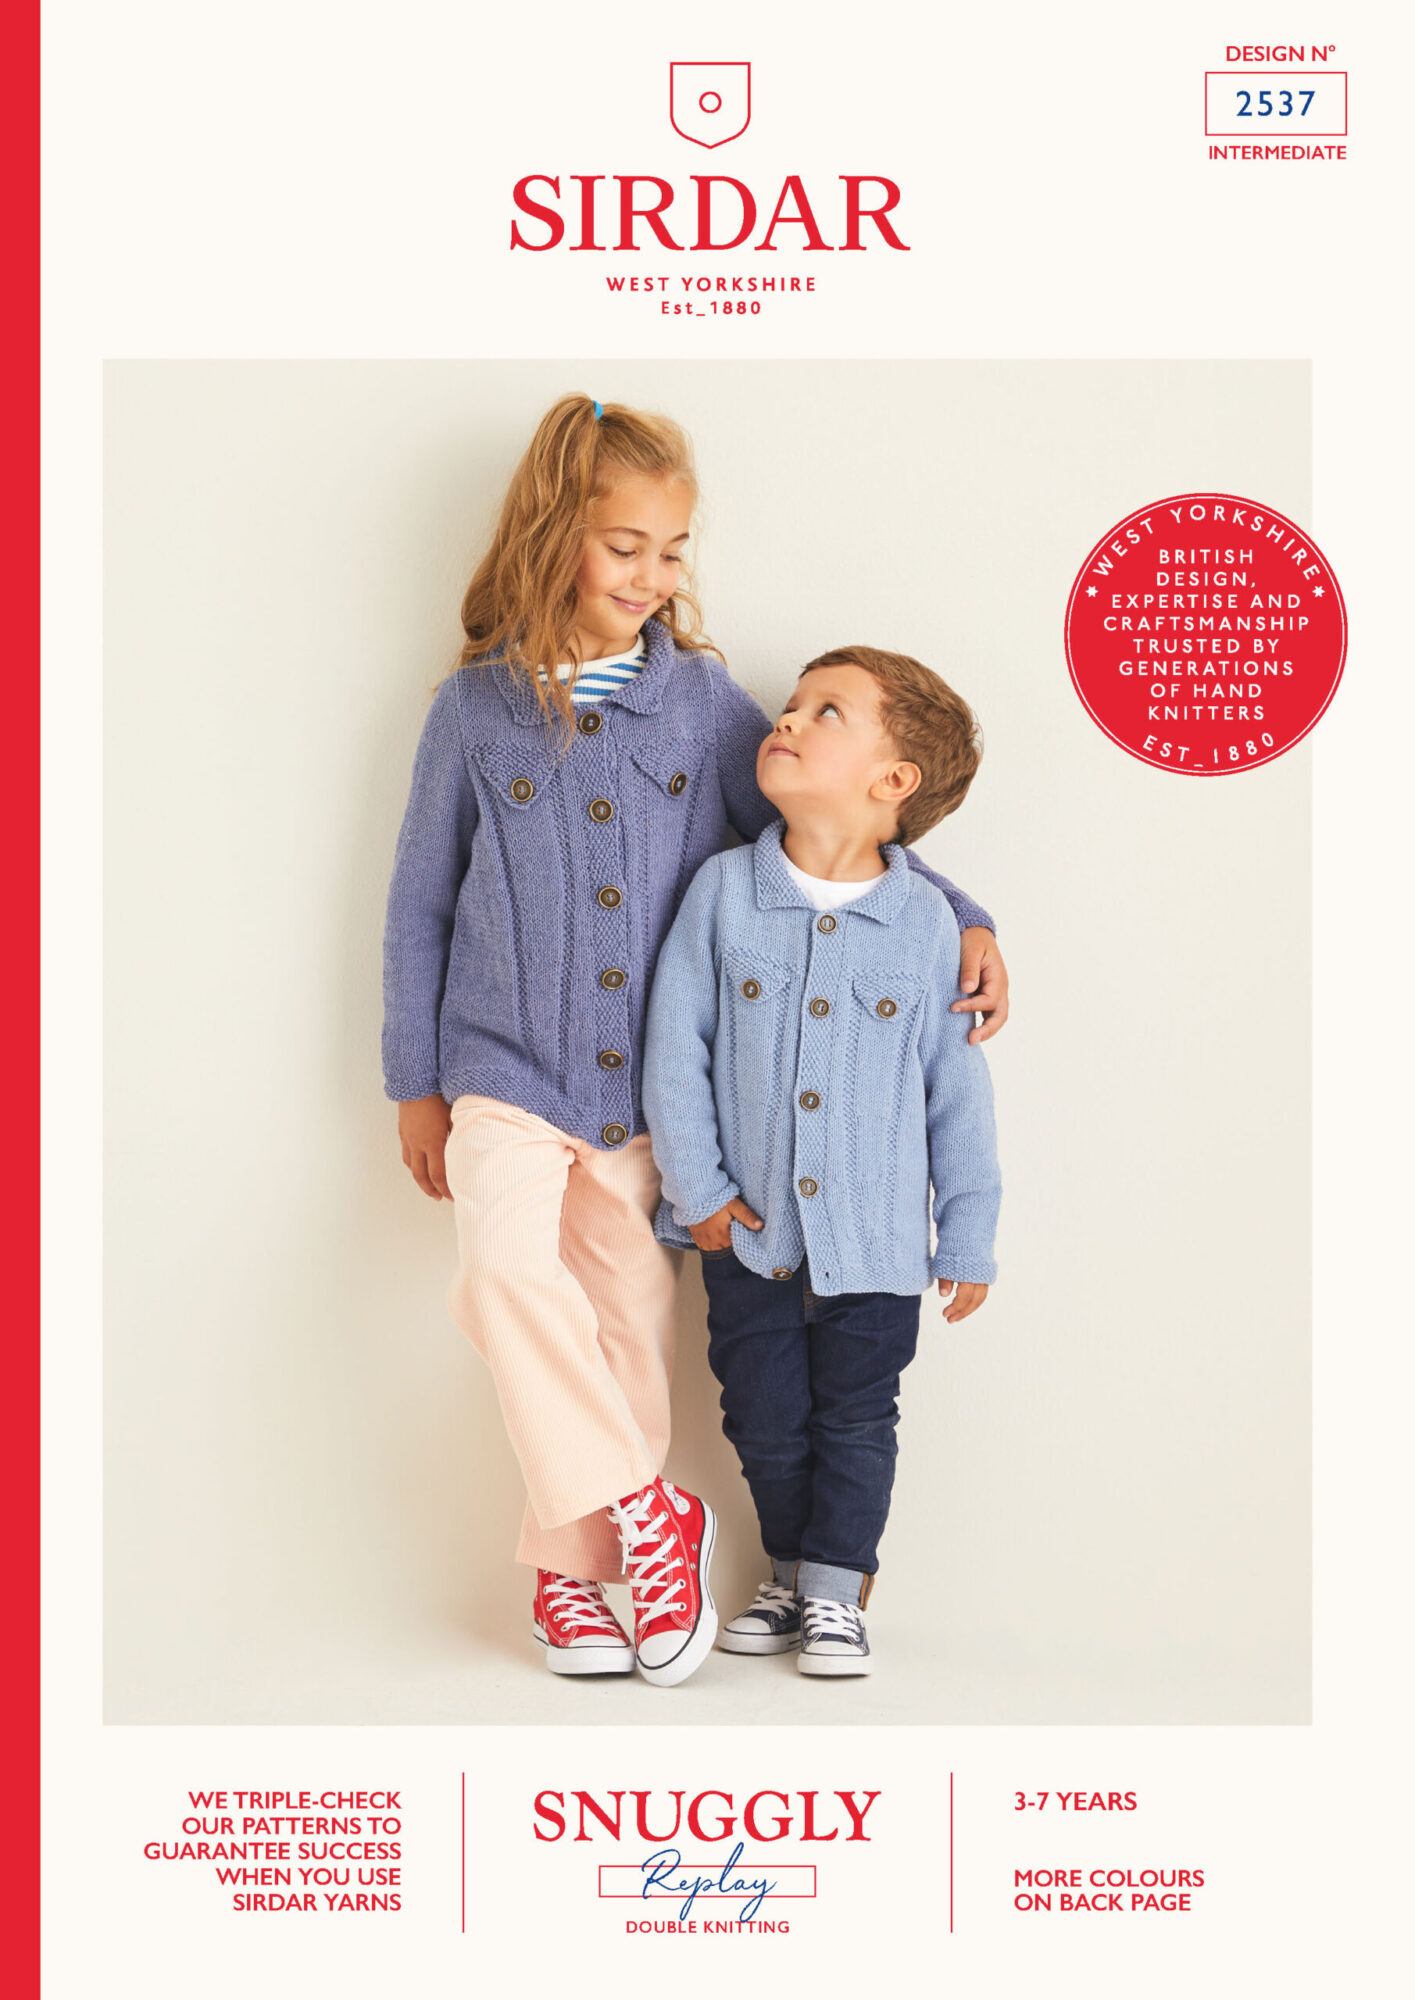 Sirdar Pattern Replay 2537 (Download) product image